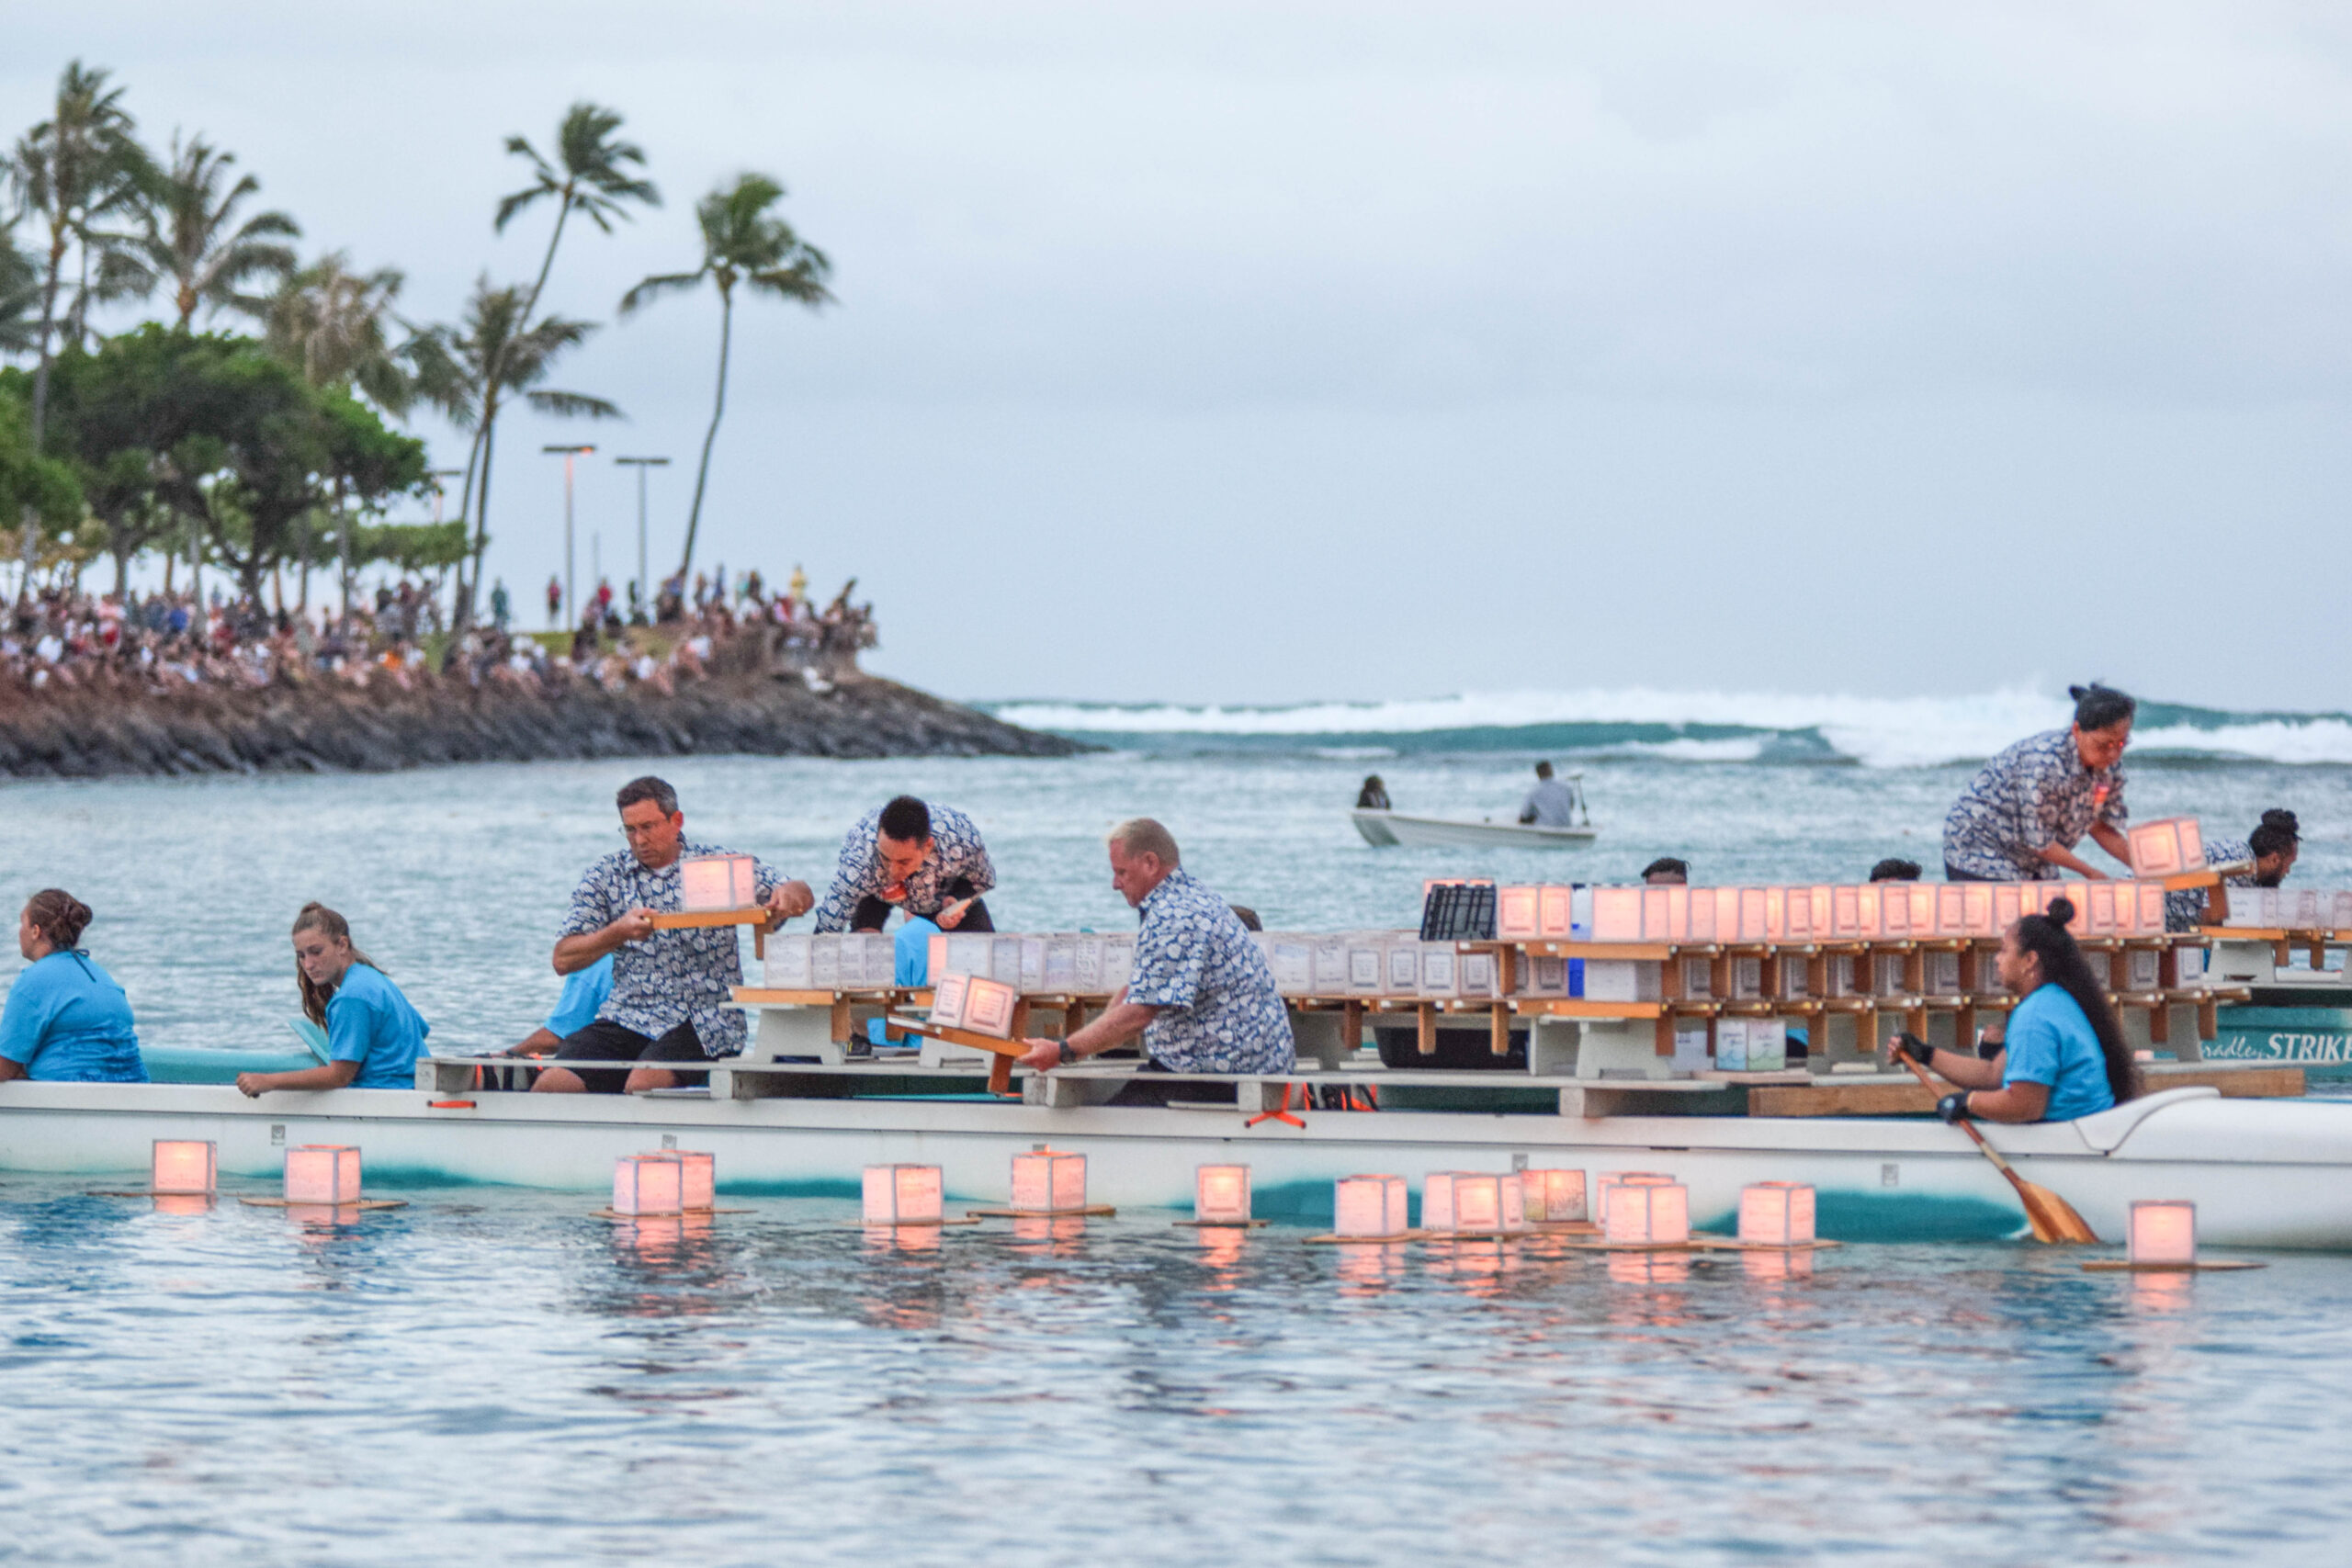 Memorial Day Lantern Floating In Hawaii - Launching lanterns into the water